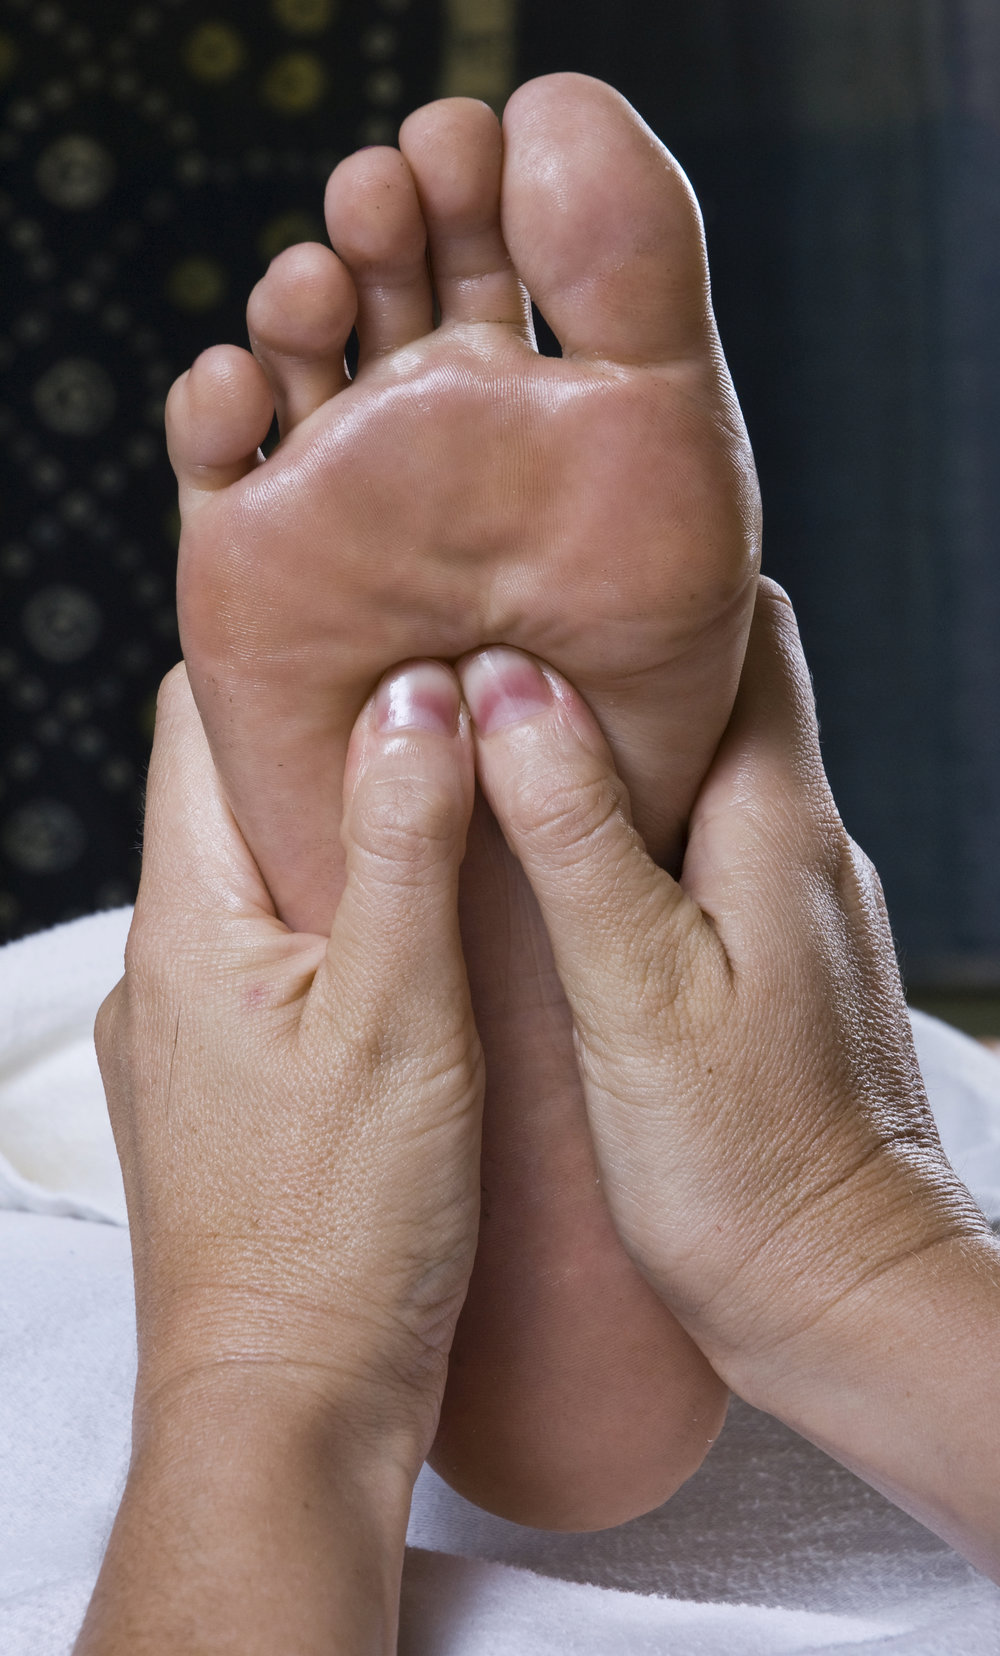 Spa foot 7103261_Large.jpg